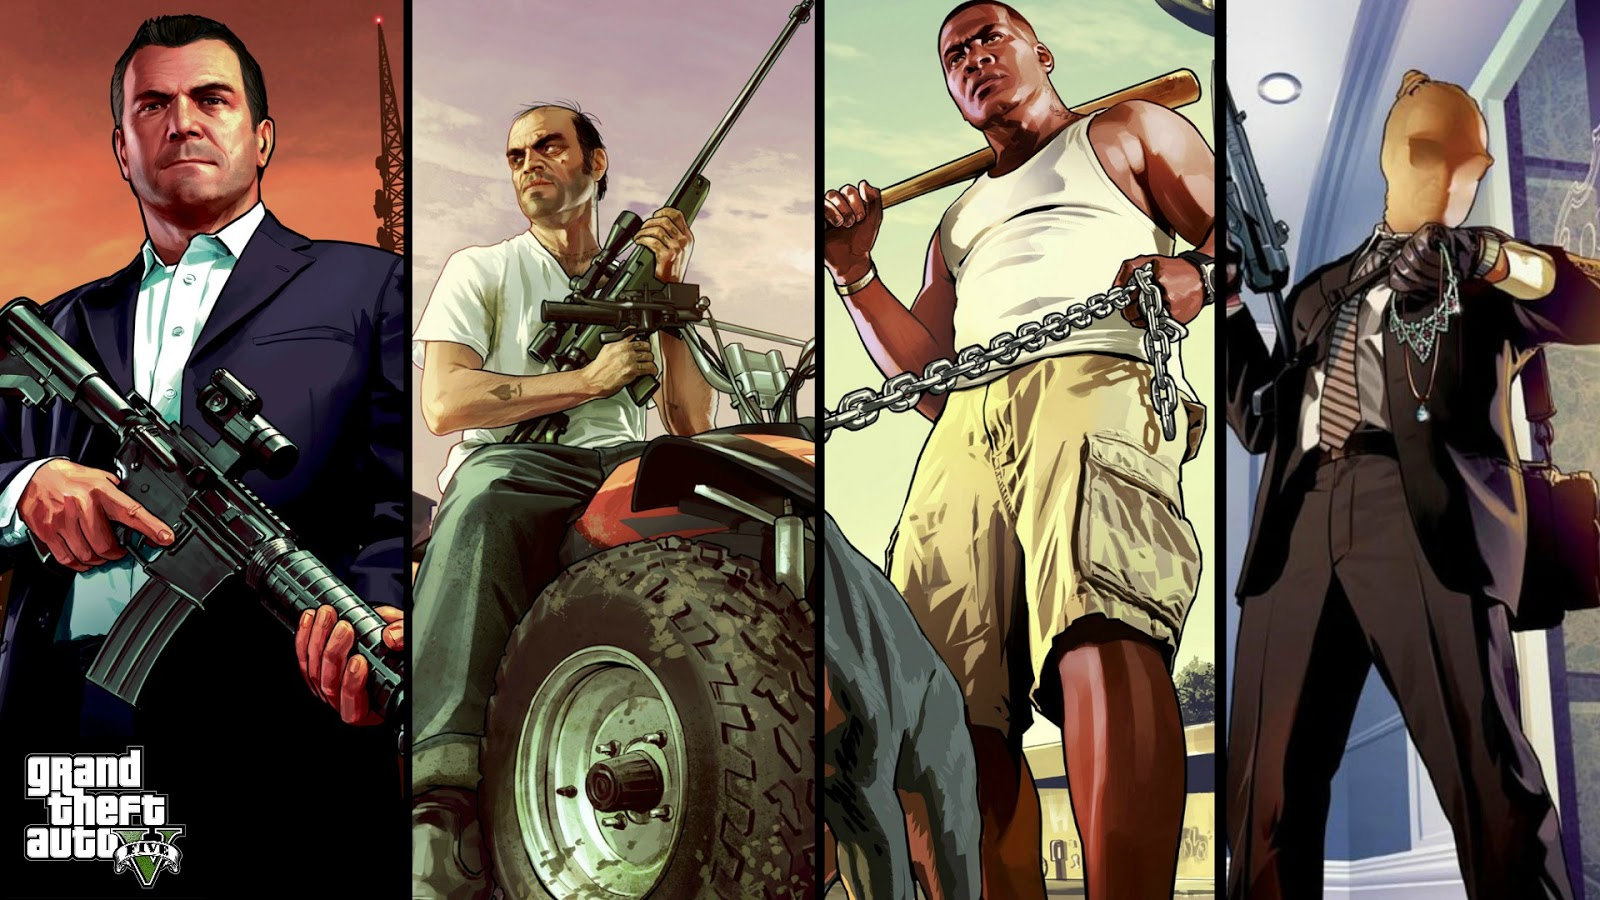 Gta 5 Wallpaper 1080p 1080p gta v wallpapers 1600x900